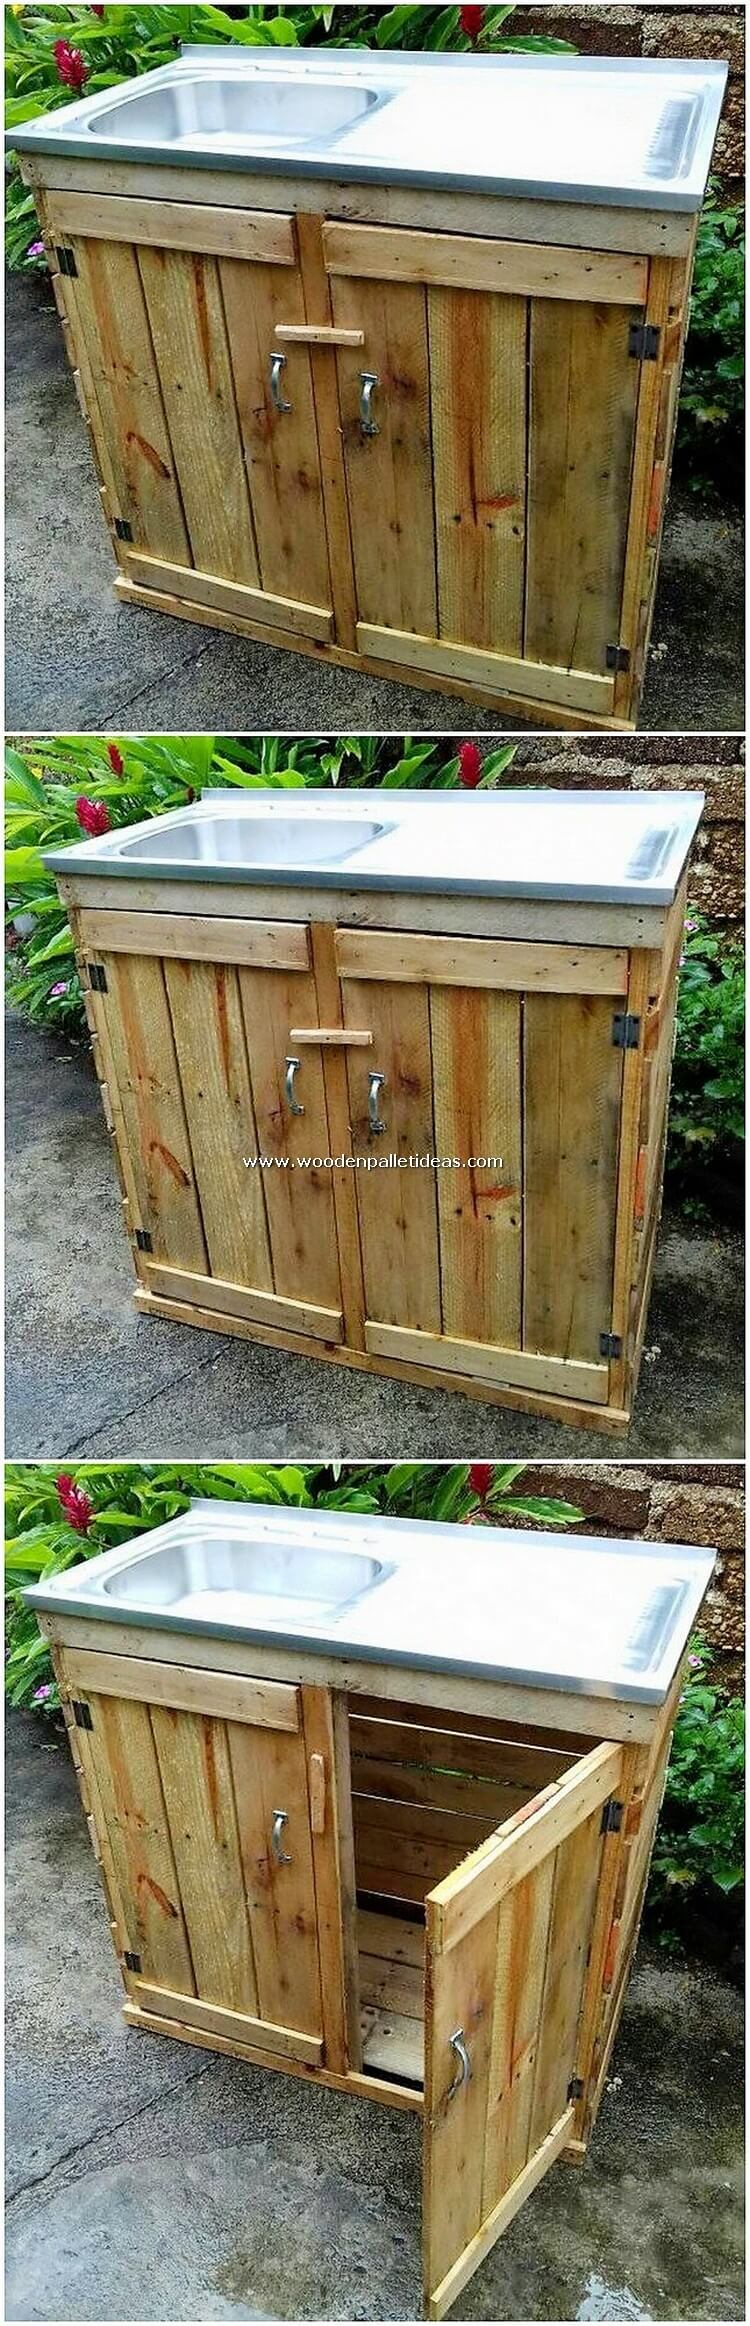 Pallet-Sink-with-Cabinet-1